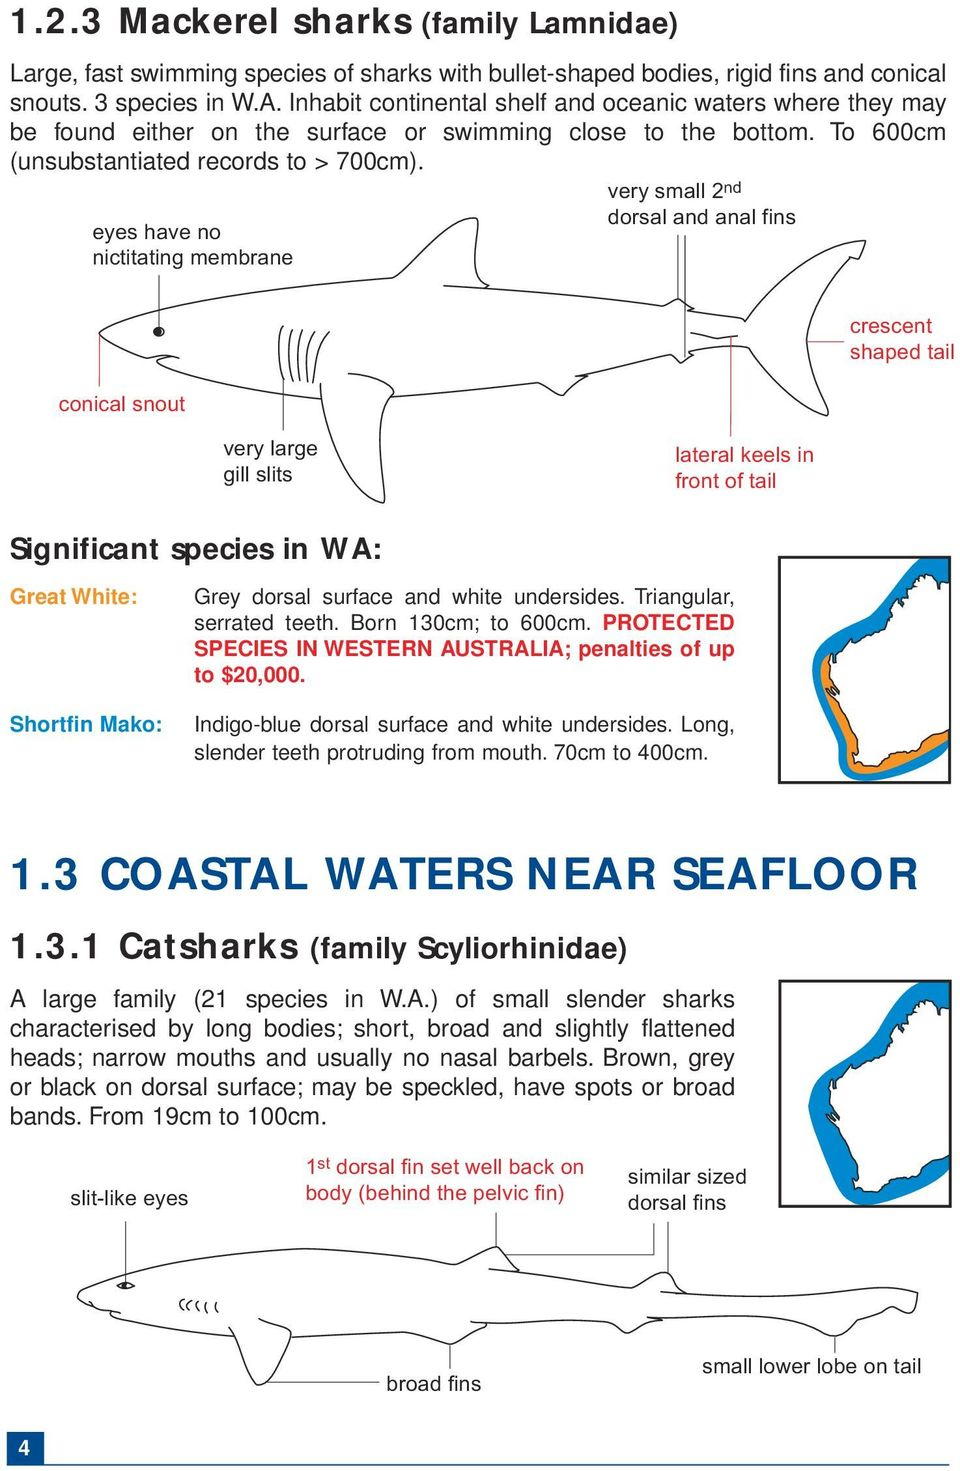 eyes have no nictitating membrane very small 2 nd dorsal and anal fins conical snout crescent shaped tail very large gill slits lateral keels in front of tail Significant species in WA: Great White: